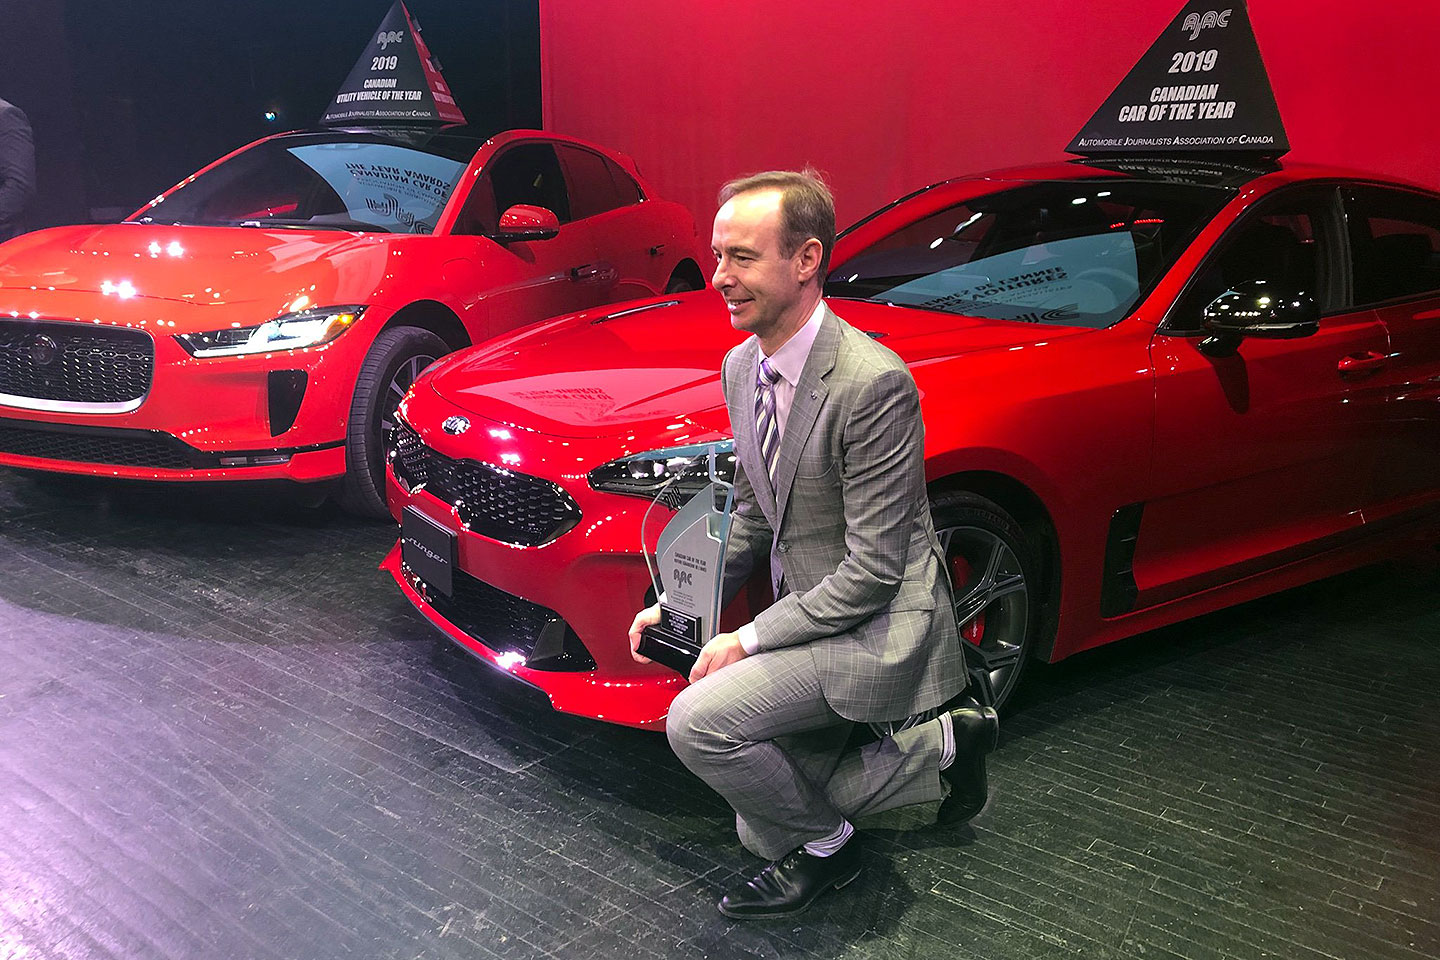 Michael Kopke, Director of Marketing for Kia Canada with the Kia Stinger